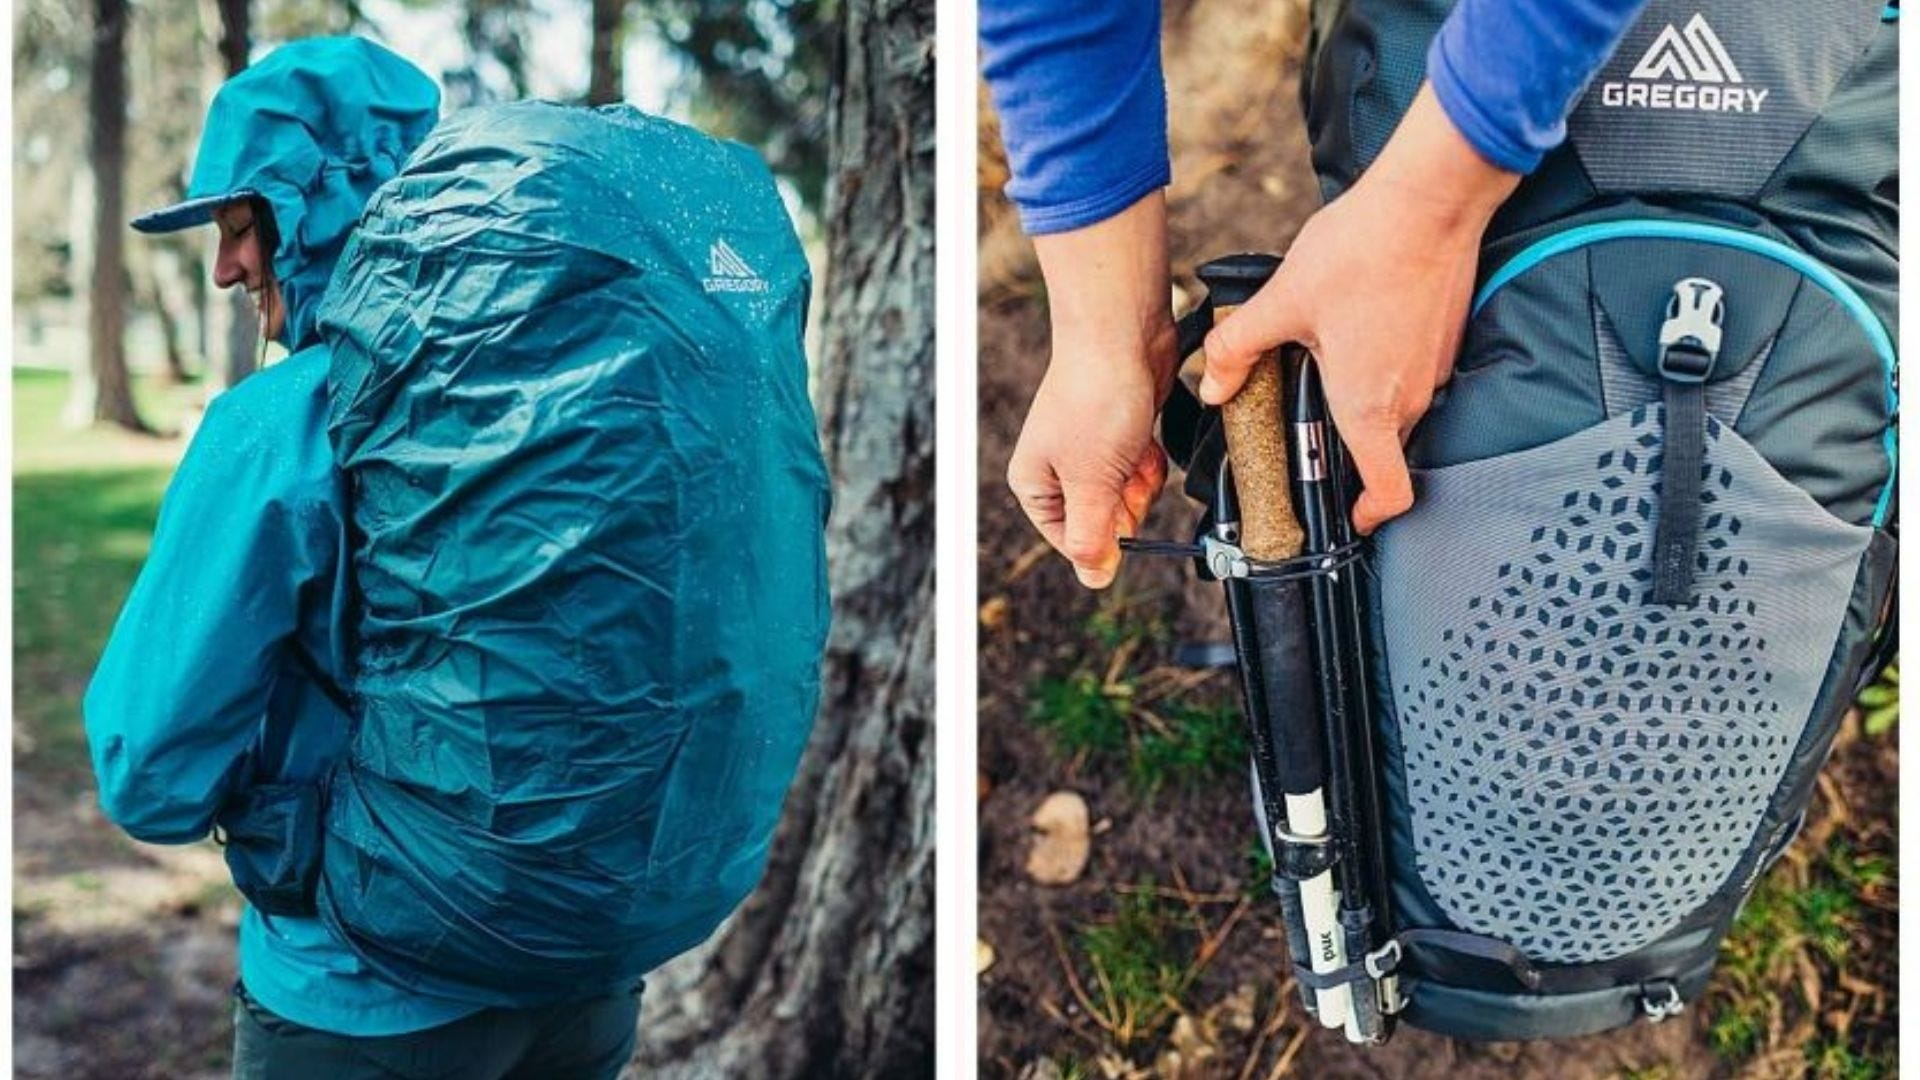 A woman wearing the Gregory overnight backpack with the rain cover over it, and someone packing hiking poles in the Gregory overnight backpack.